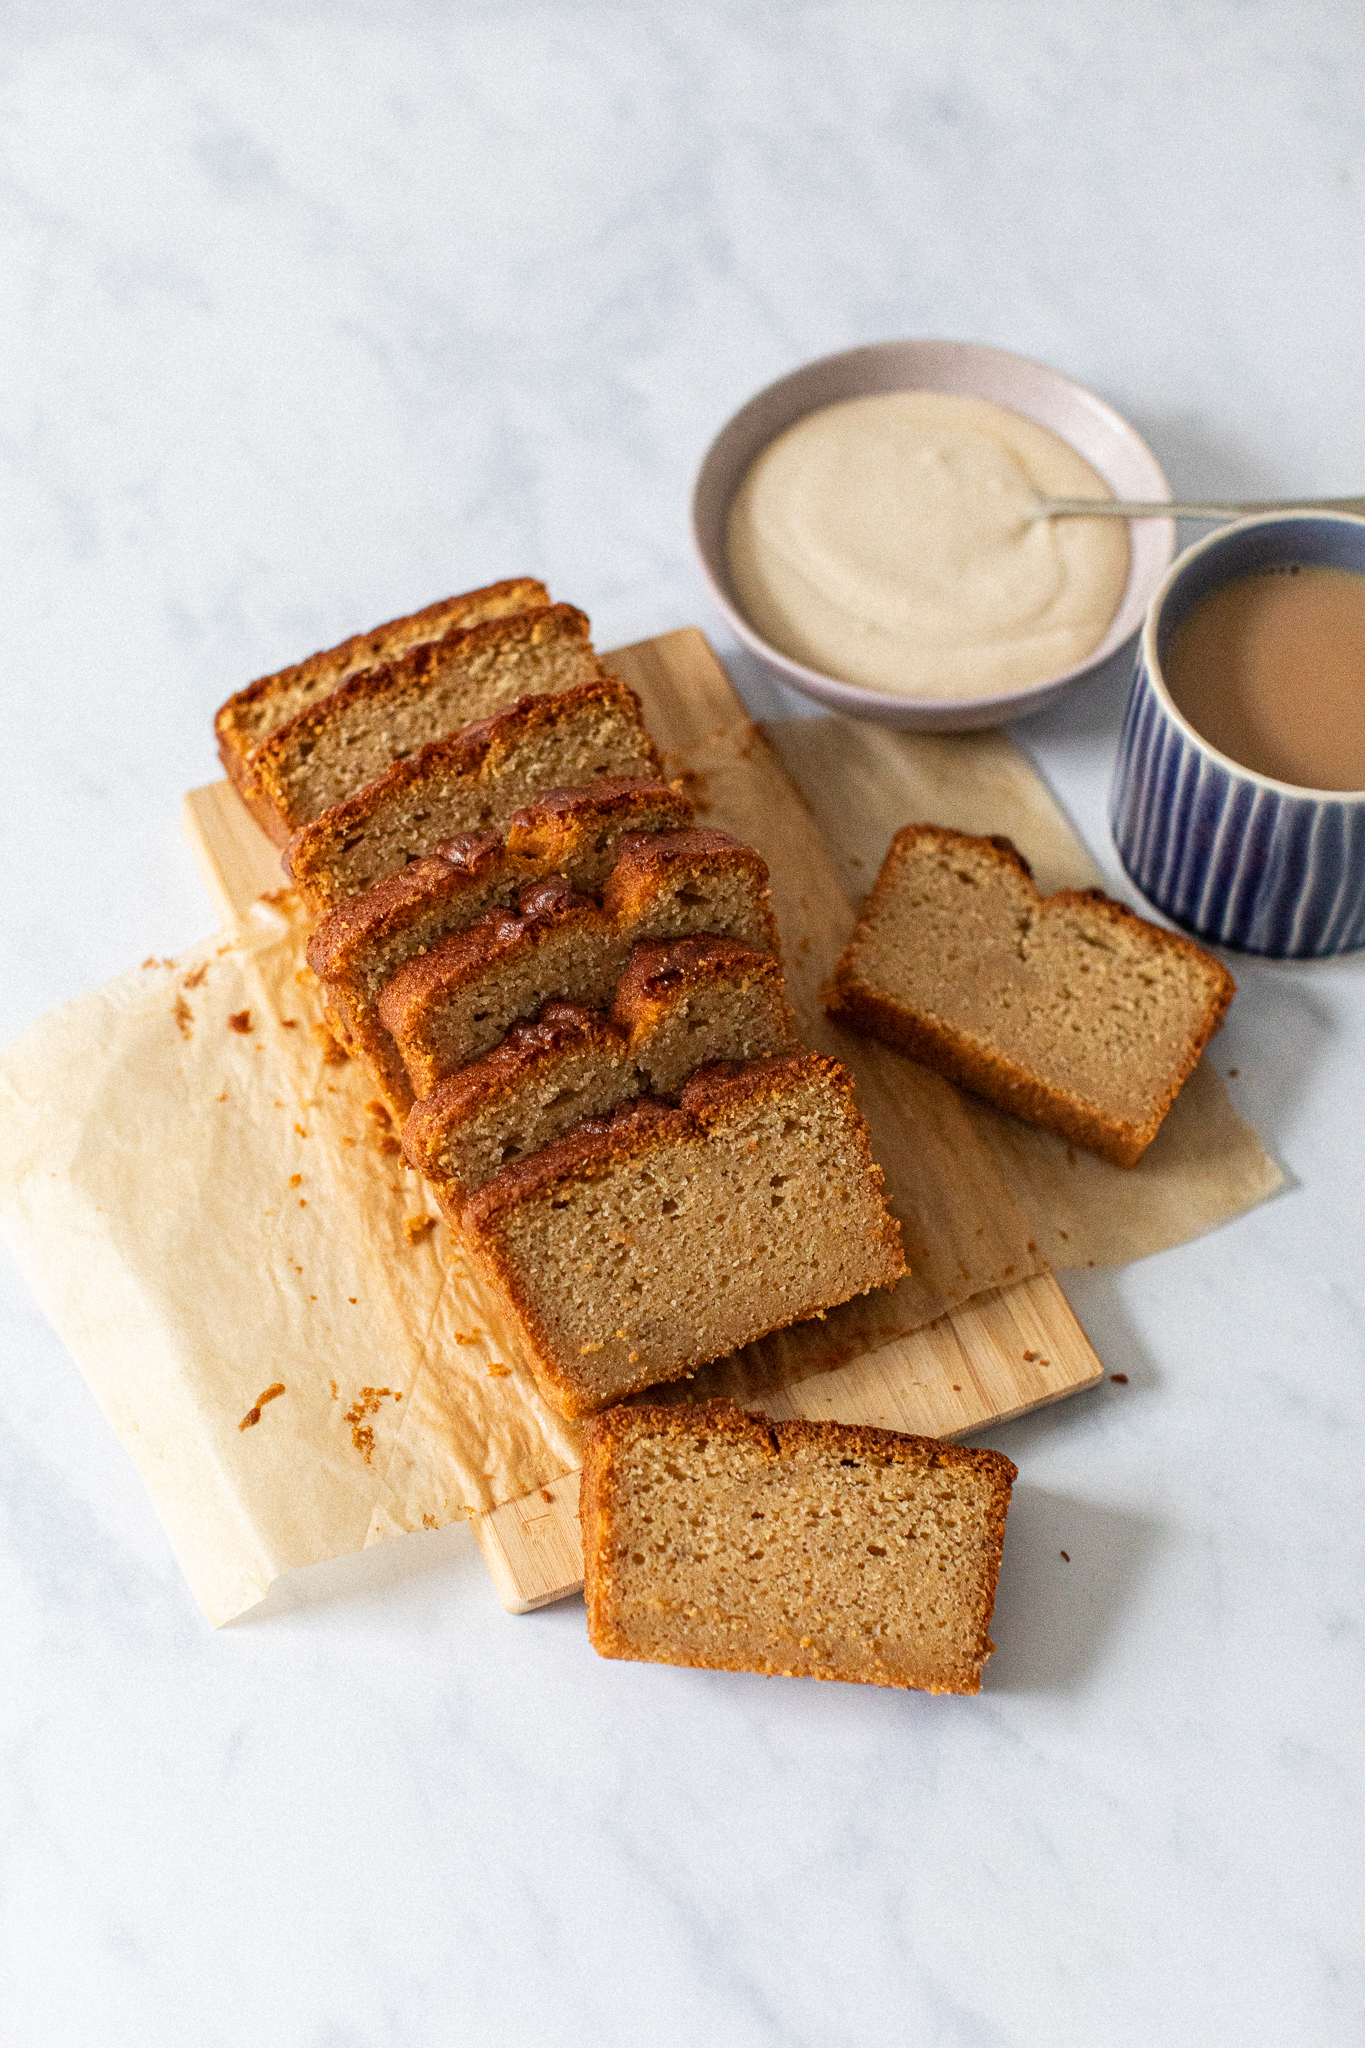 Sliced low FODMAP gluten free coffee and cardamom loaf cake